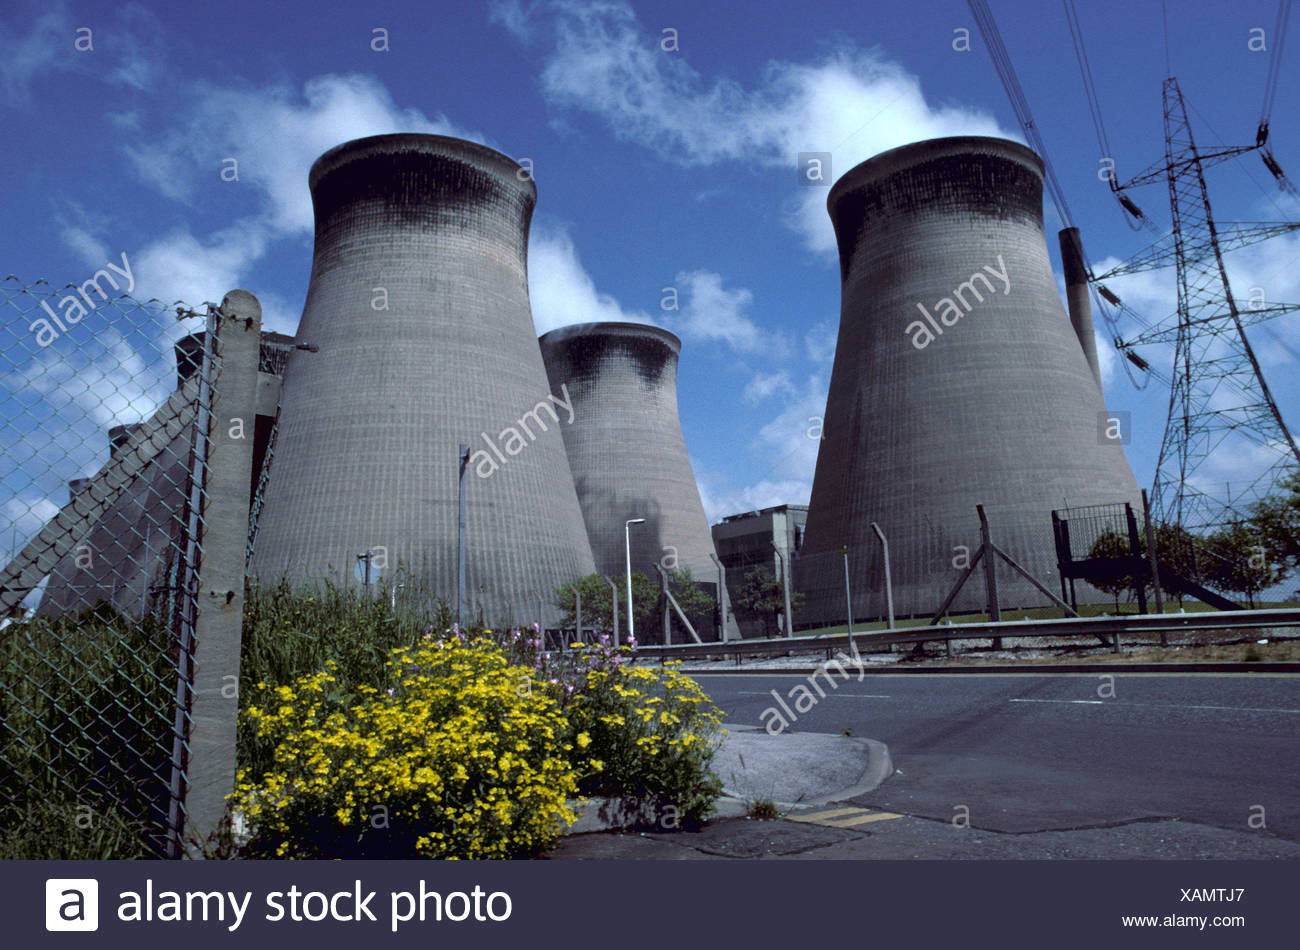 Weatherby Power Station, Yorkshire, showing large towers, environmental - Stock Image